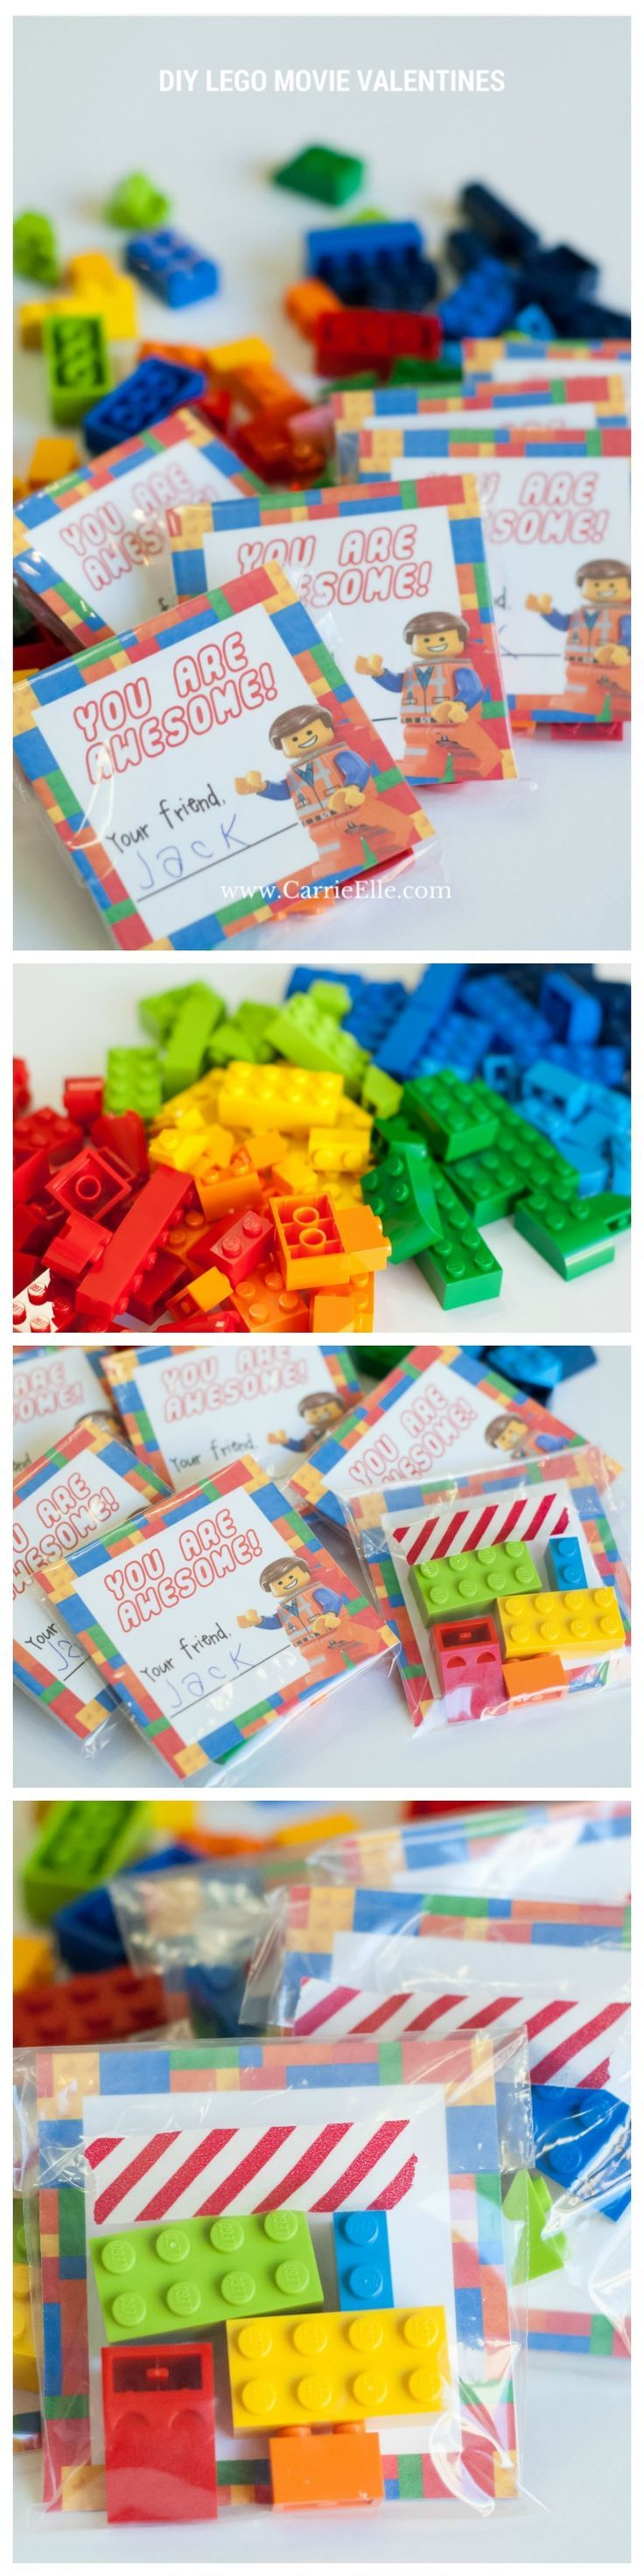 Diy lego movie valentines with free printable lego movie for Diy lego crafts